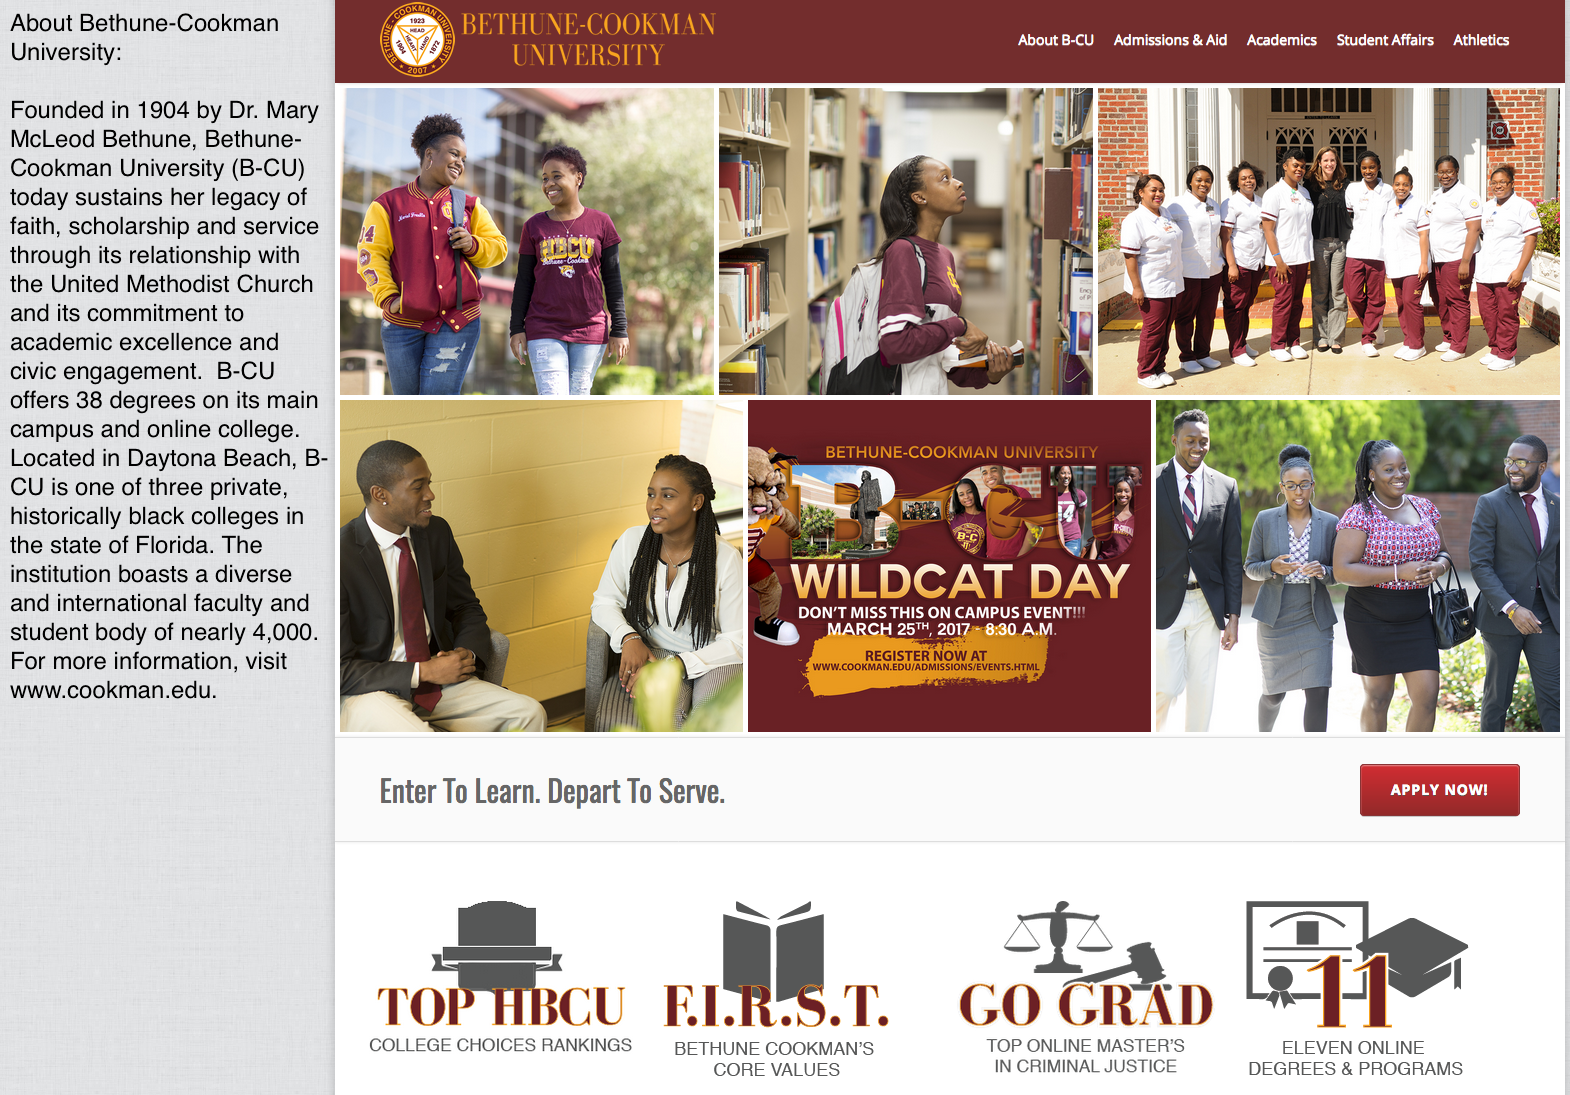 About Bethune-Cookman University